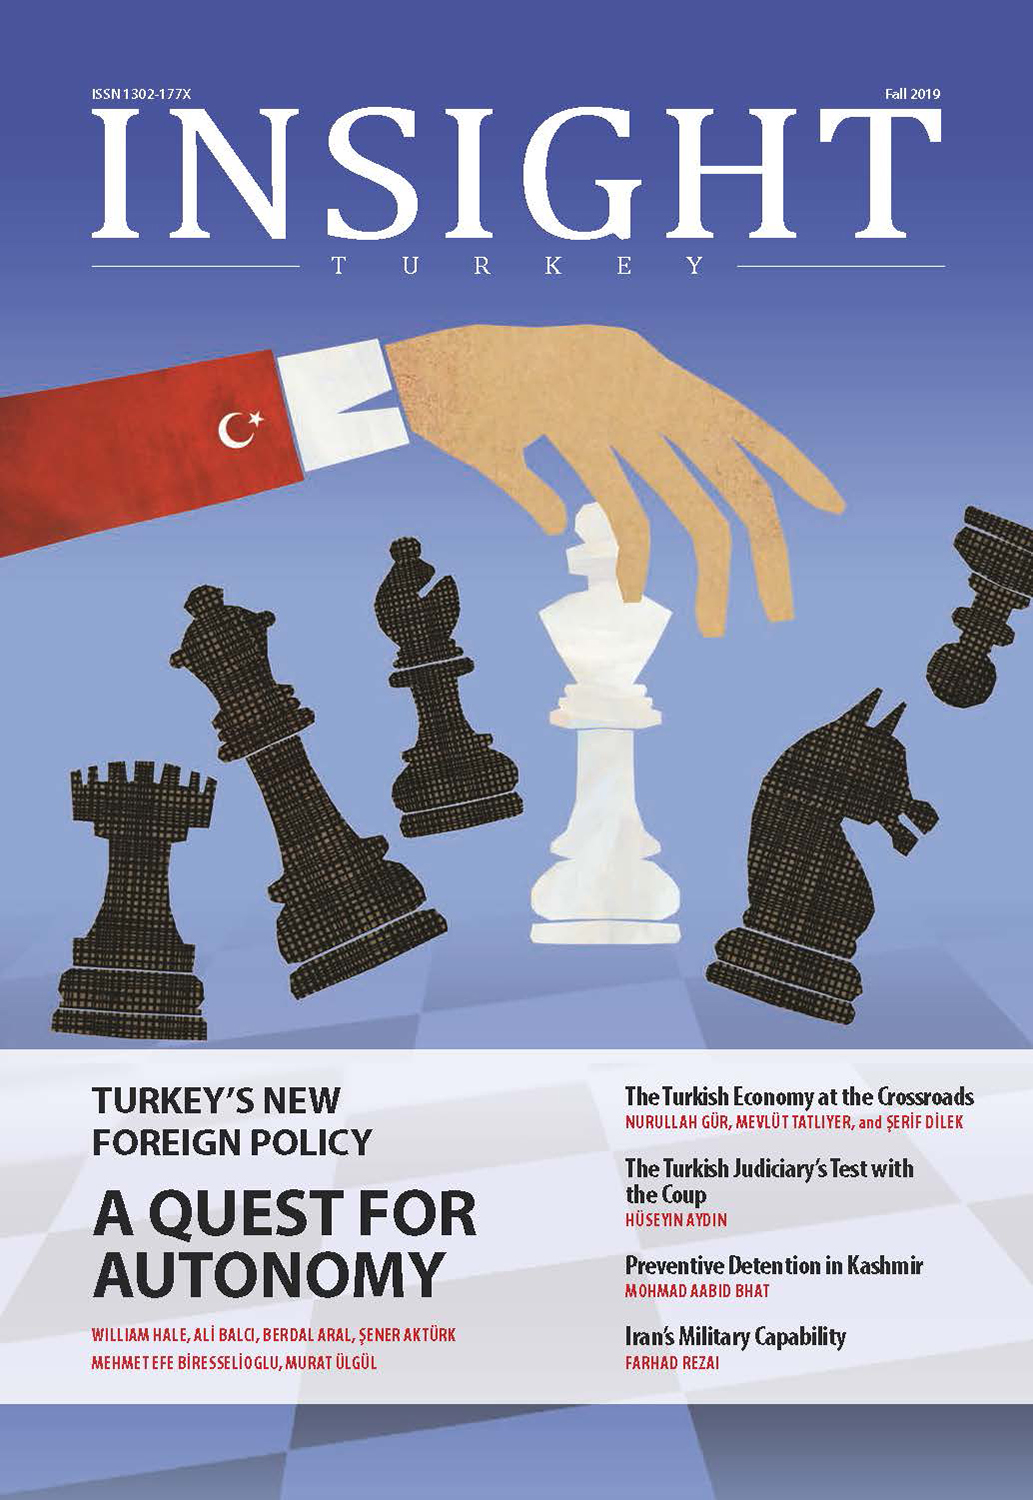 Insight Turkey > Issues | Turkey's New Foreign Policy: A Quest for Autonomy - Winter 2019 / Volume 21 Number 4